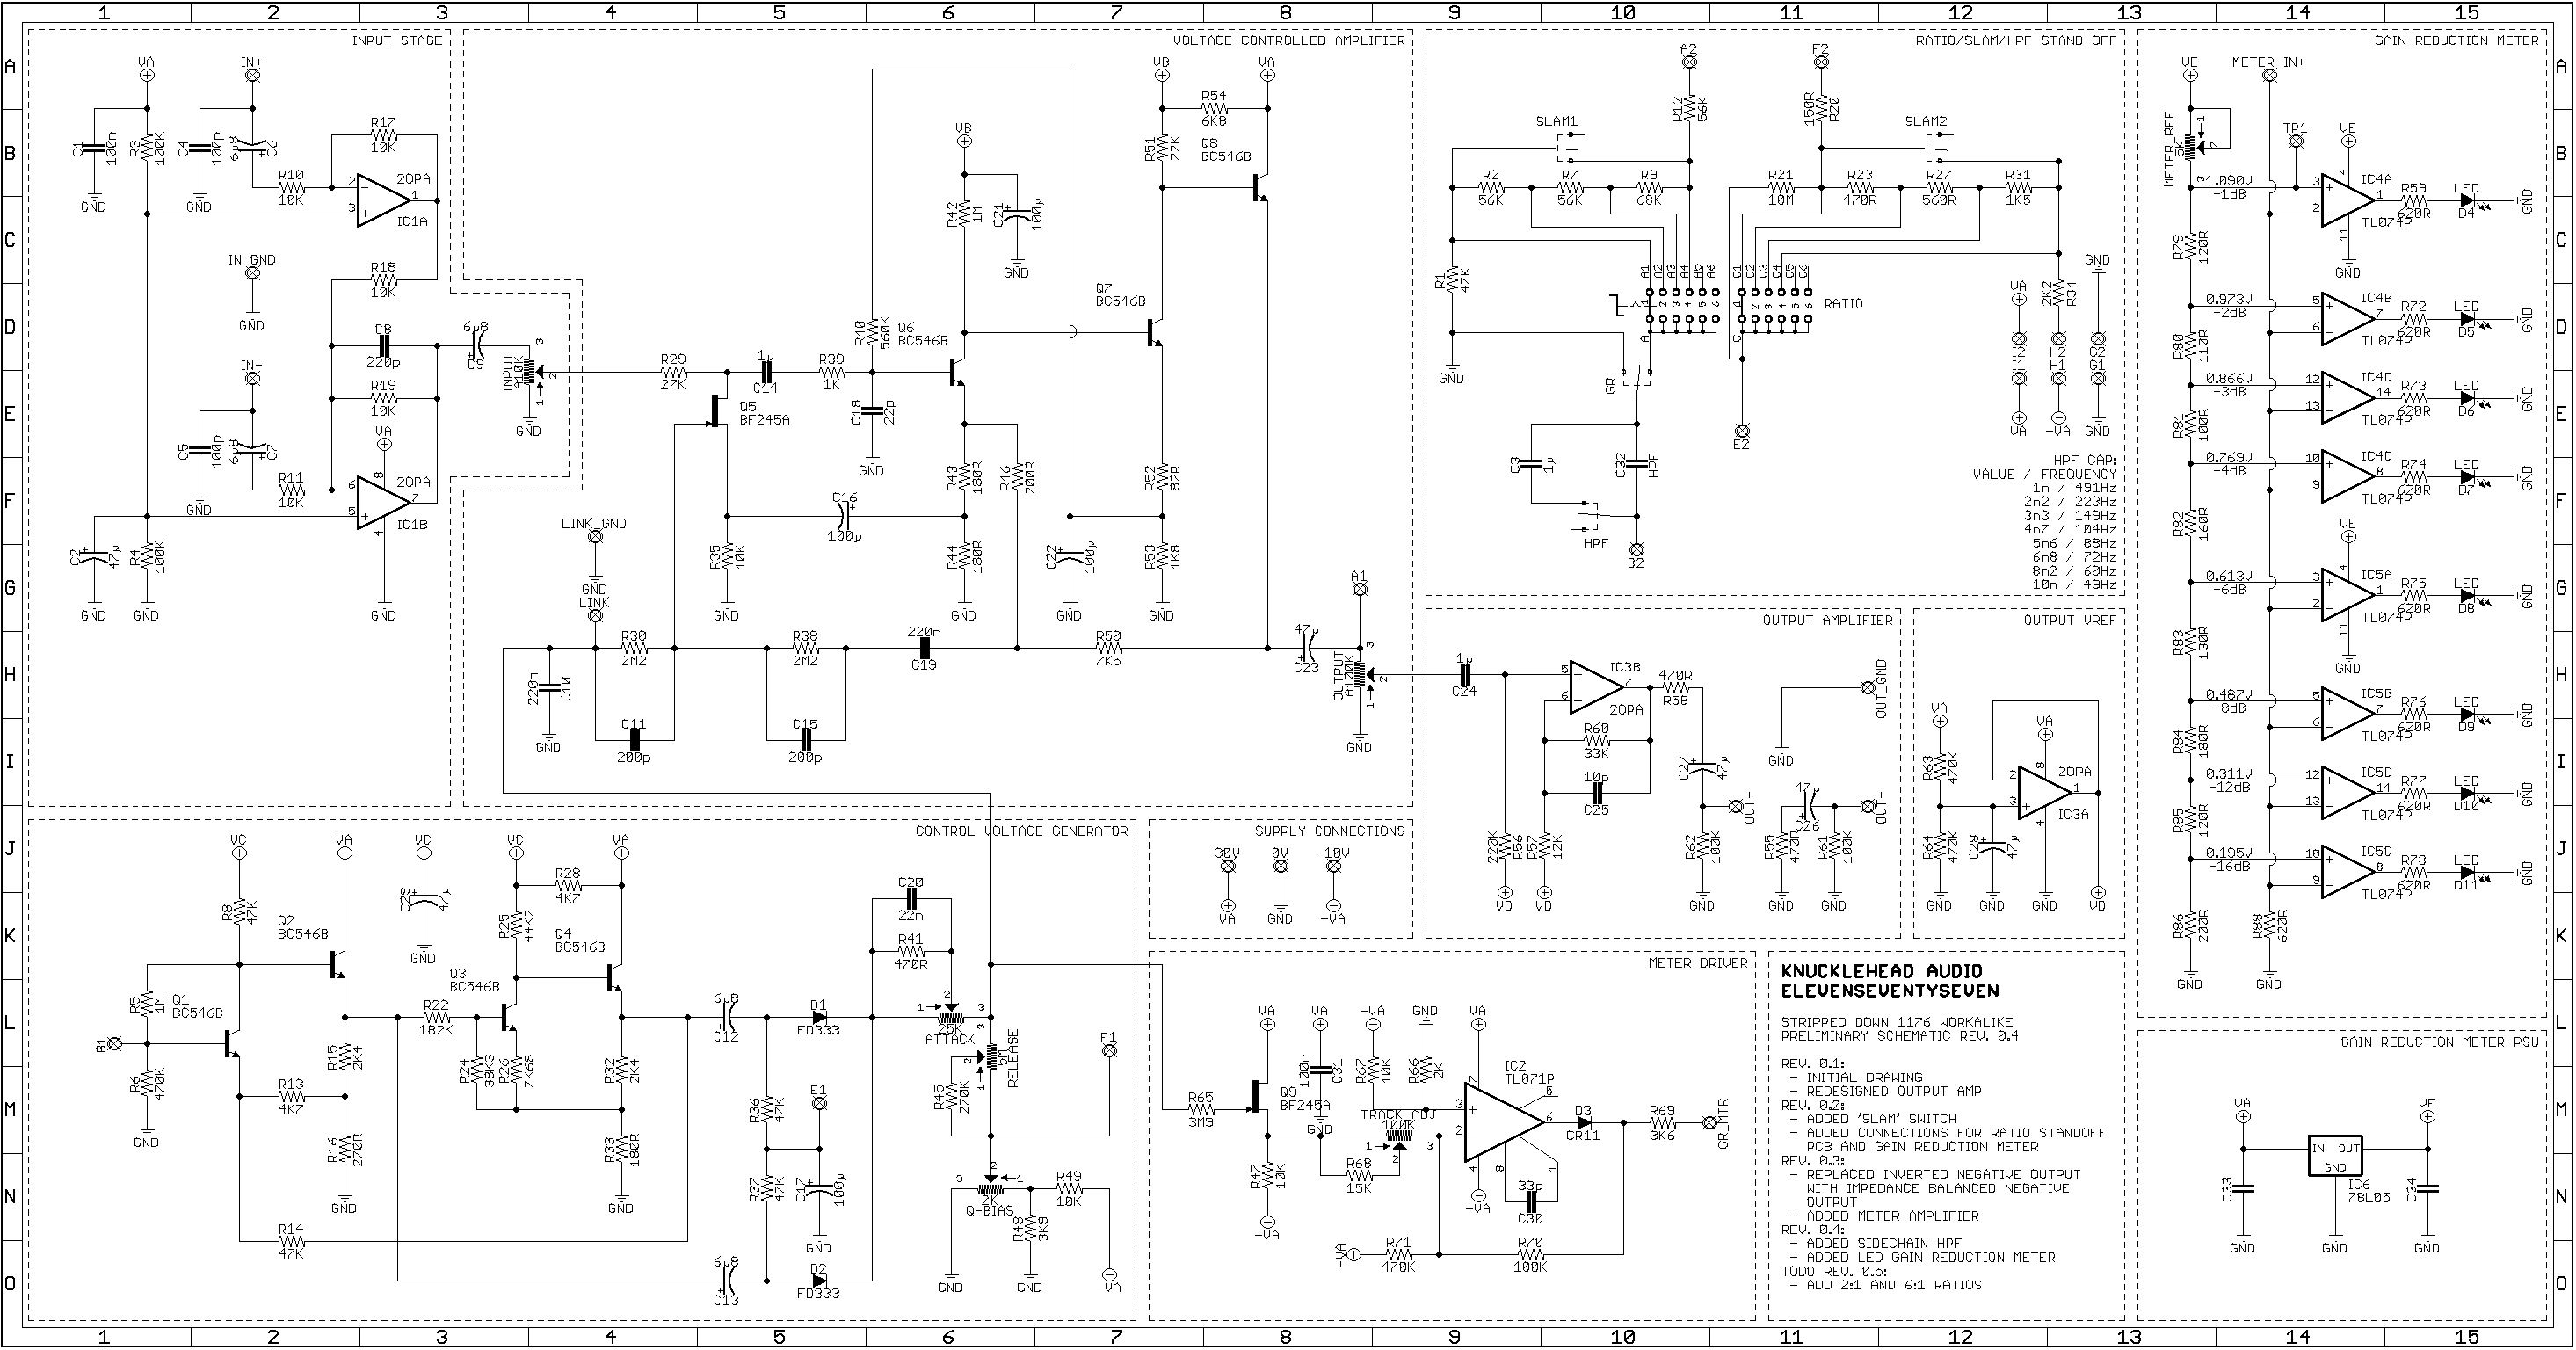 Stripped Down Transformerless 1176 Workalike Project Opamp Audio Mixer Circuit Diagram With Ne5532 Working Schematic In Progress